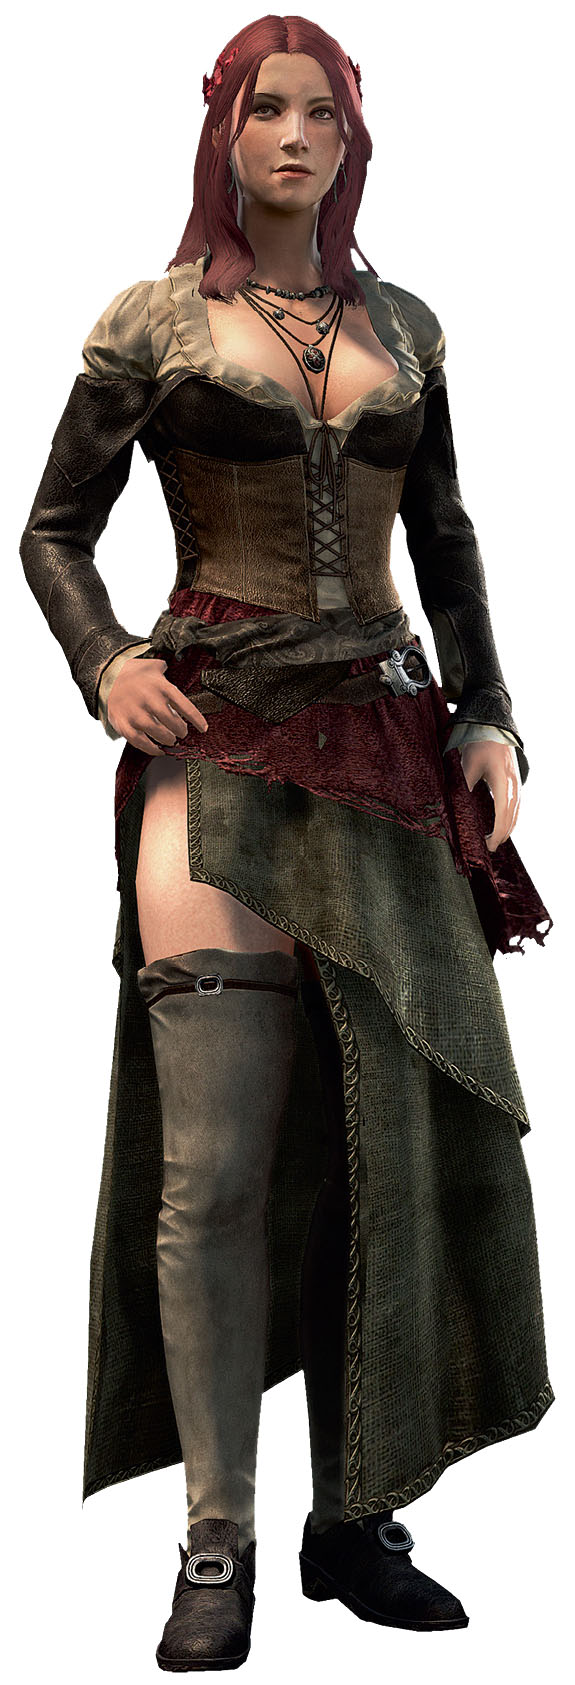 Anne Bonny from the Assassin's Creed Series